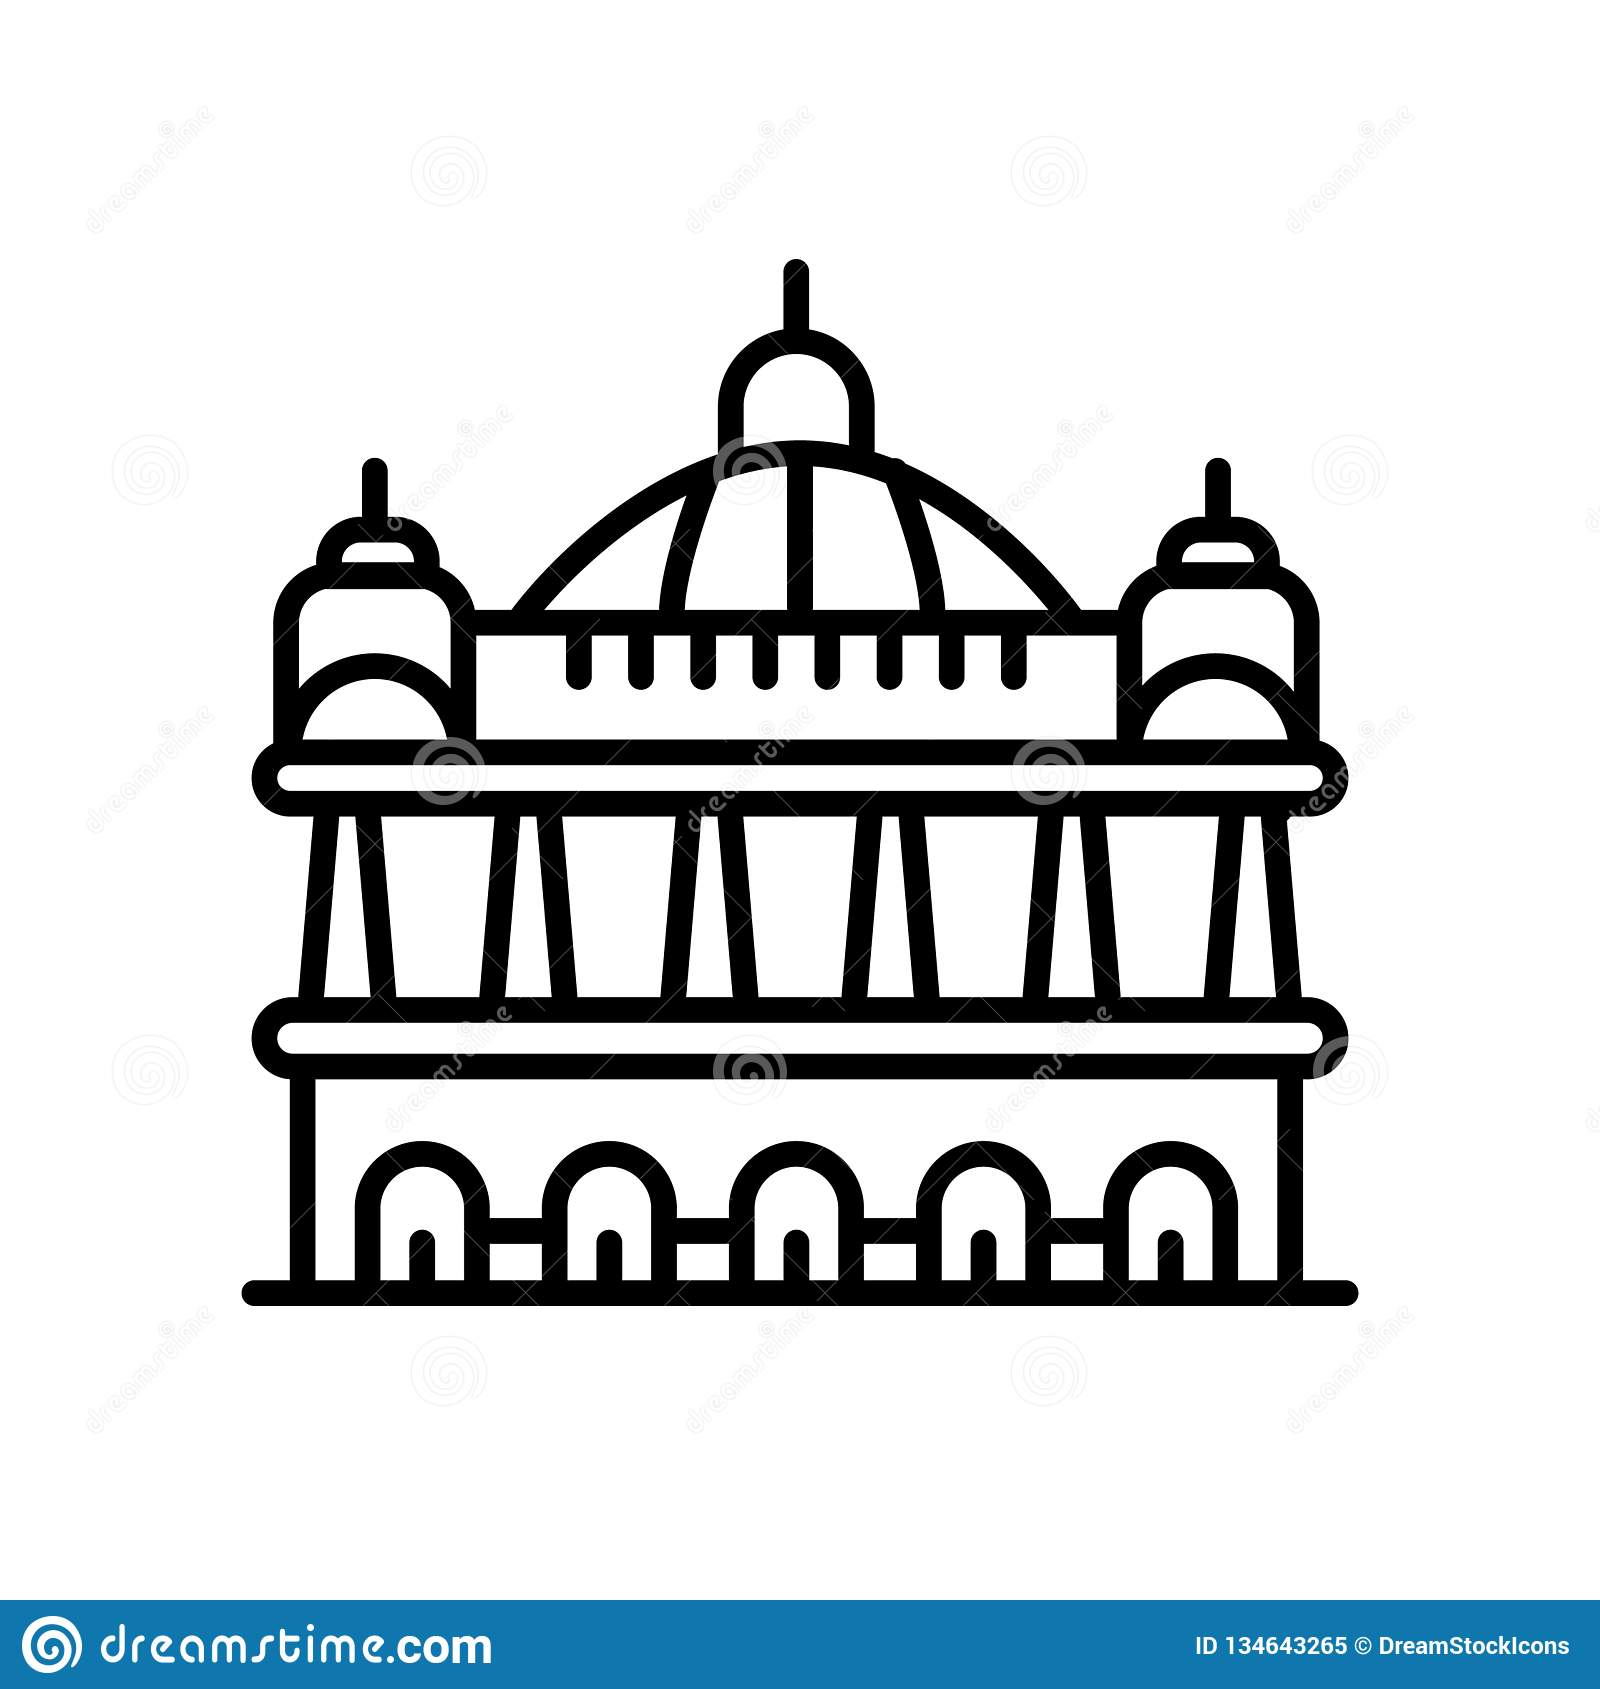 Palais Garnier icon vector isolated on white background, Palais Garnier sign , line or linear sign, element design in outline